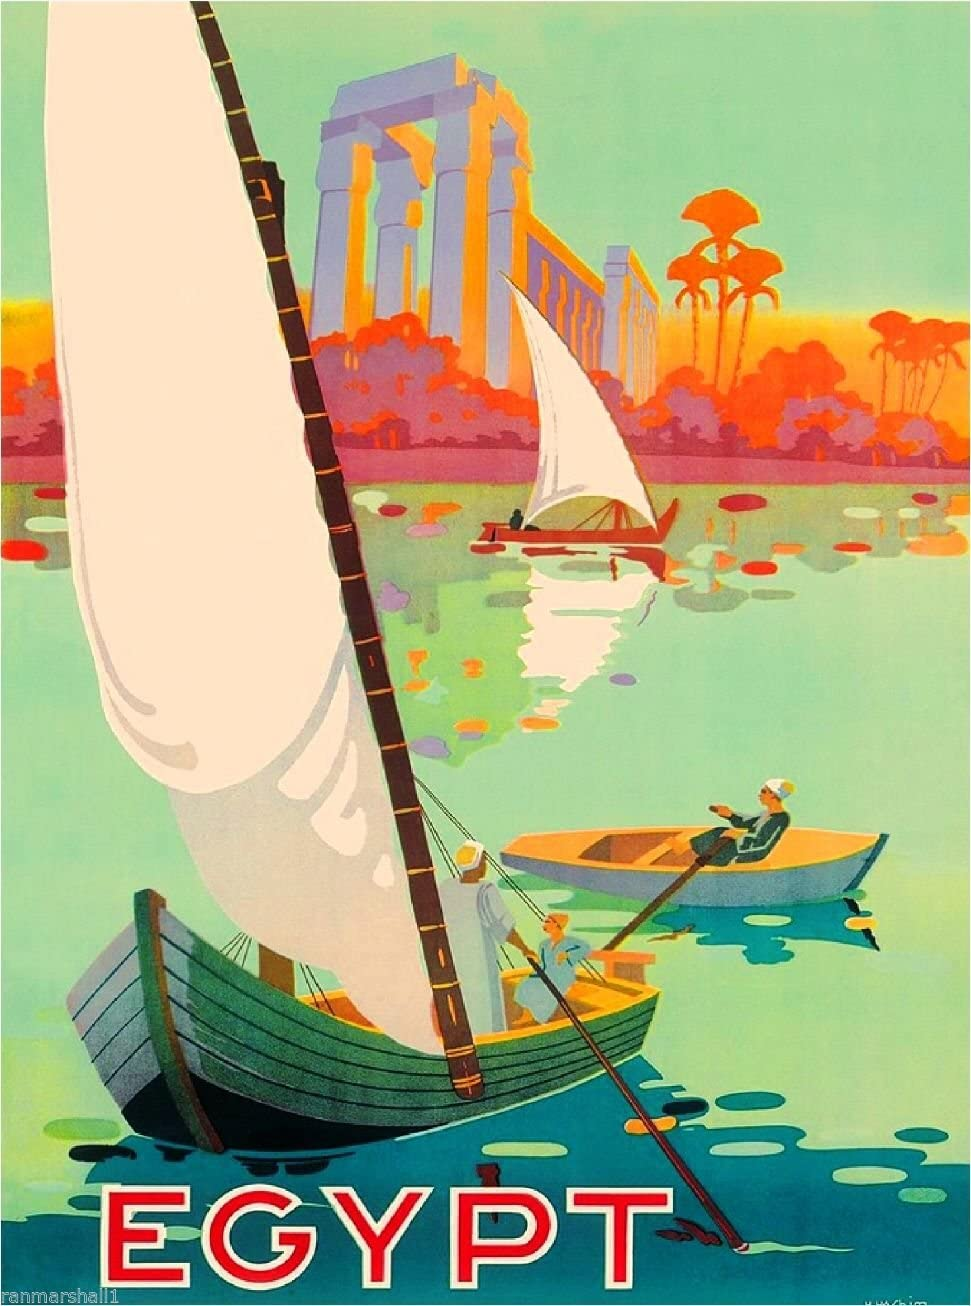 A SLICE IN TIME Along The Nile Egypt Egyptian Middle East Vintage Travel Advertisement Wall Decor Collectible Poster Print. Measures 10 x 13.5 inches